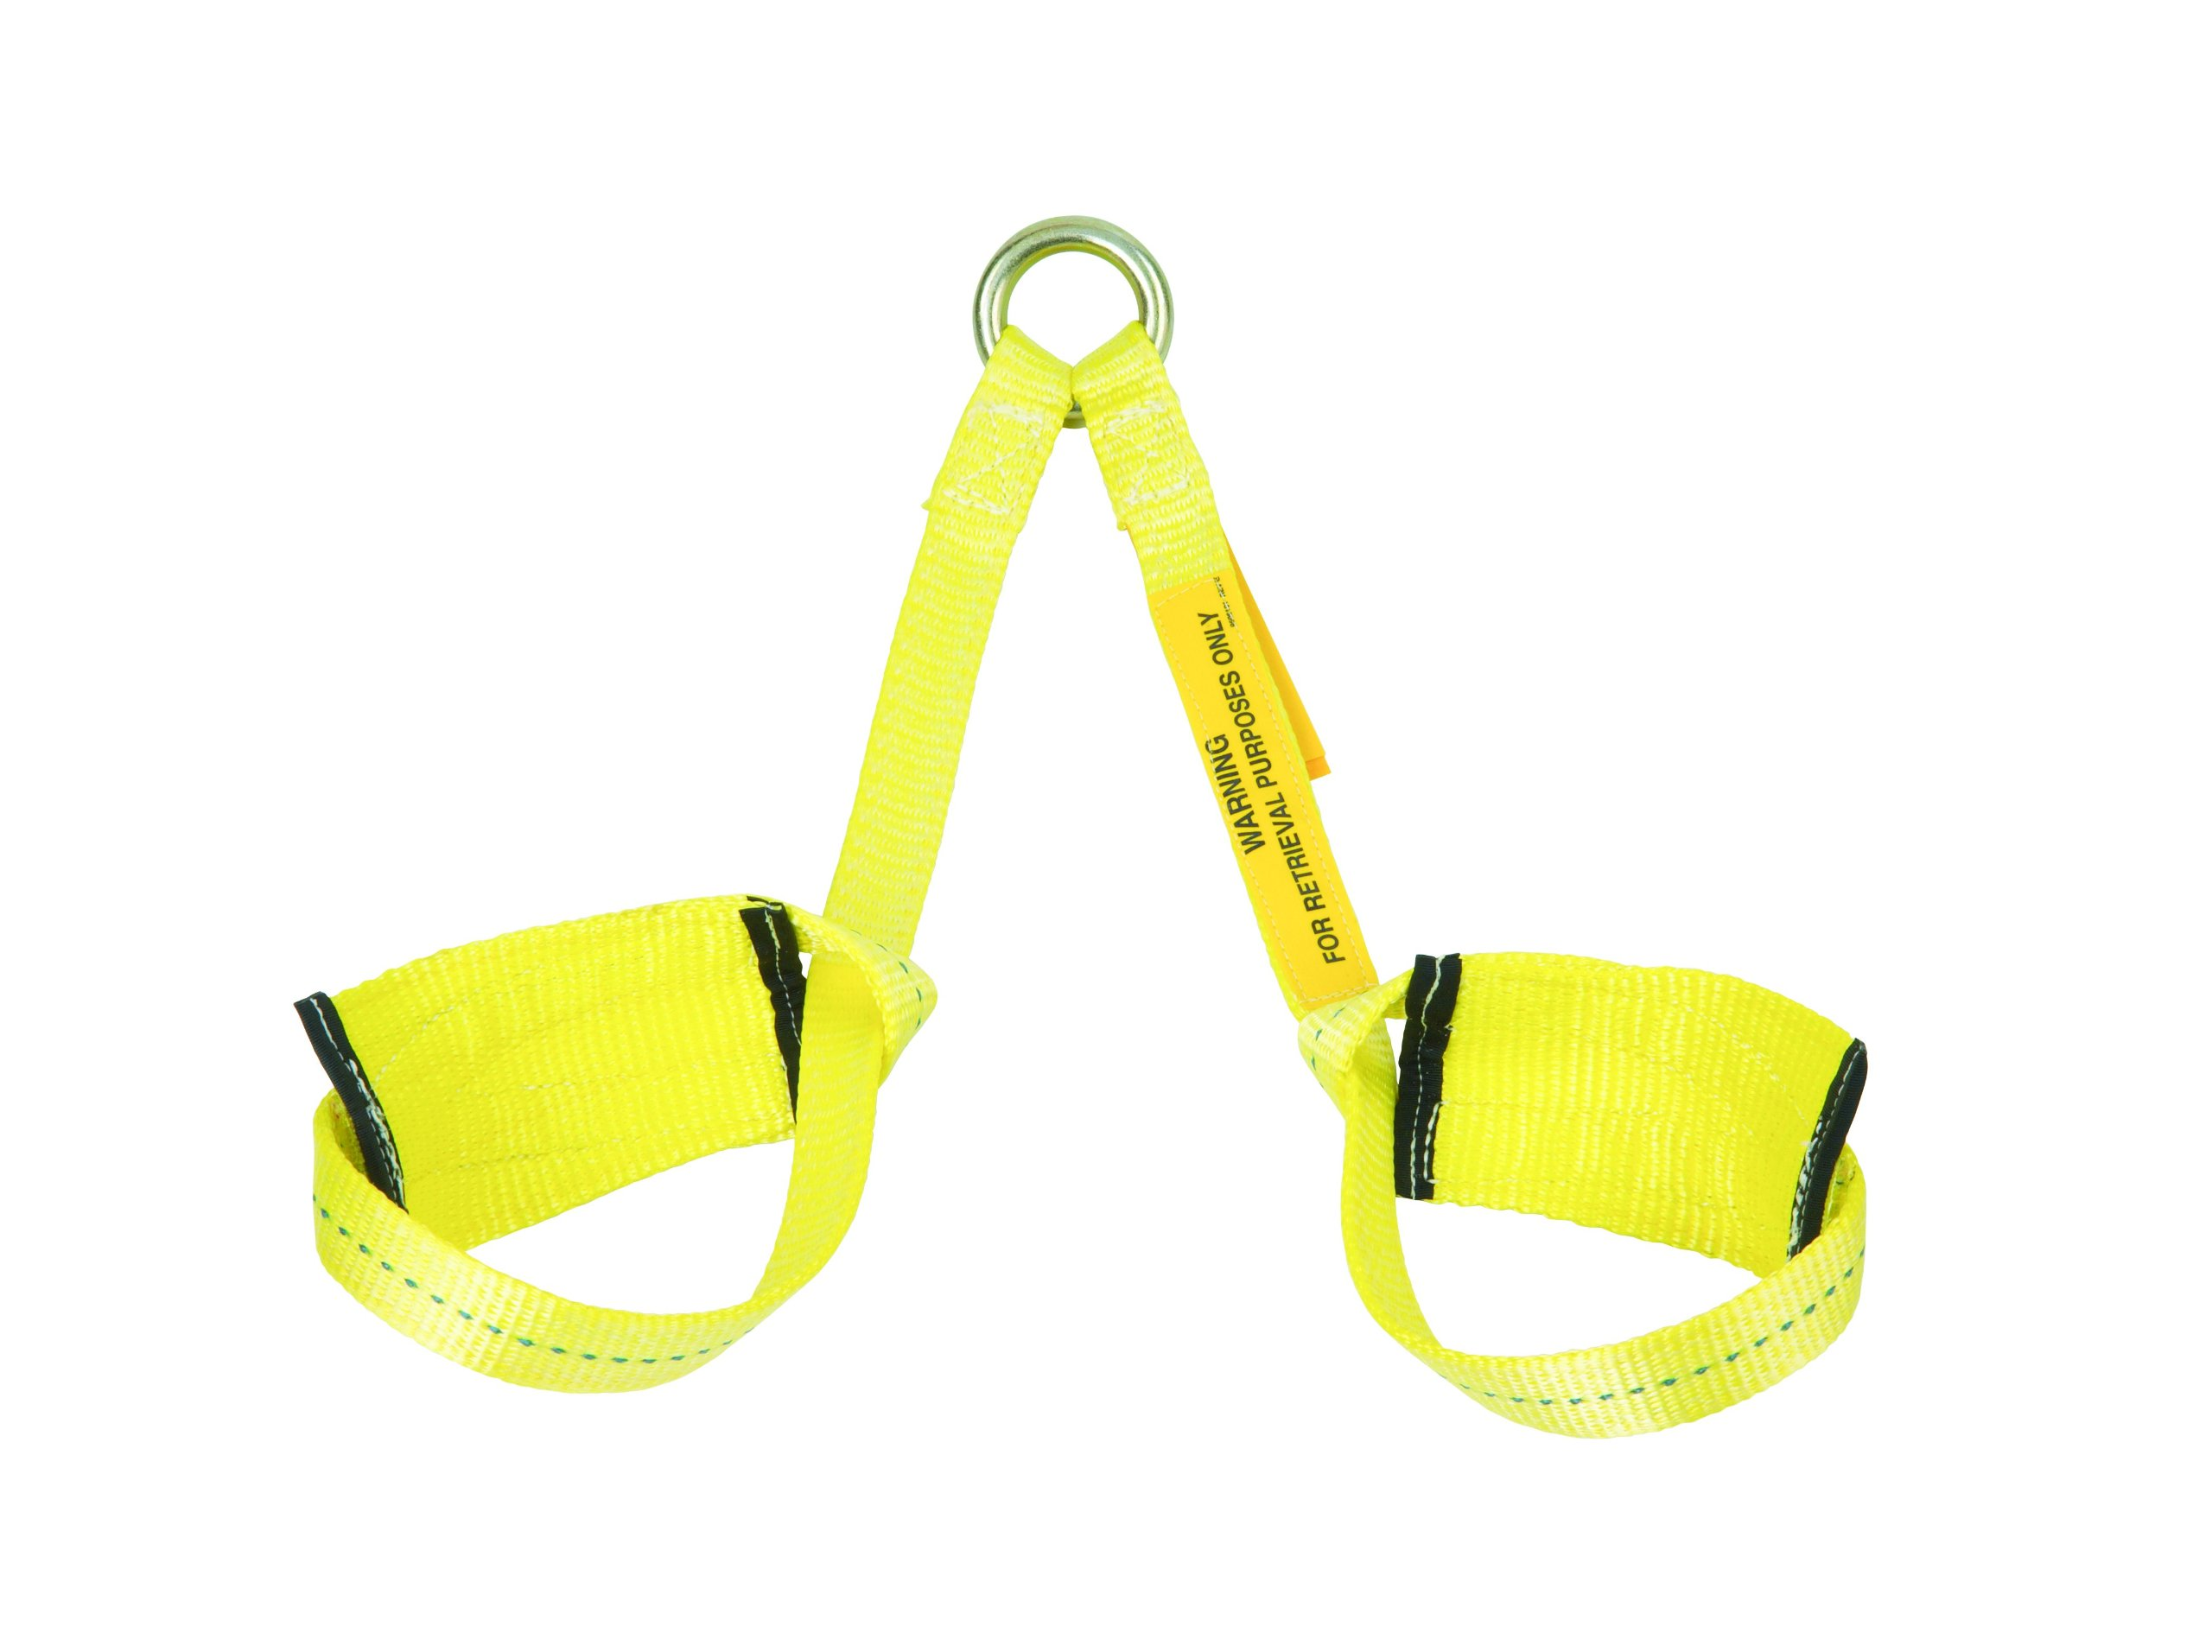 3M DBI-SALA 1001220 Retrieval Wristlets For Confined Space Rescue, Attached With O-Ring At One End, 2-Foot, Yellow